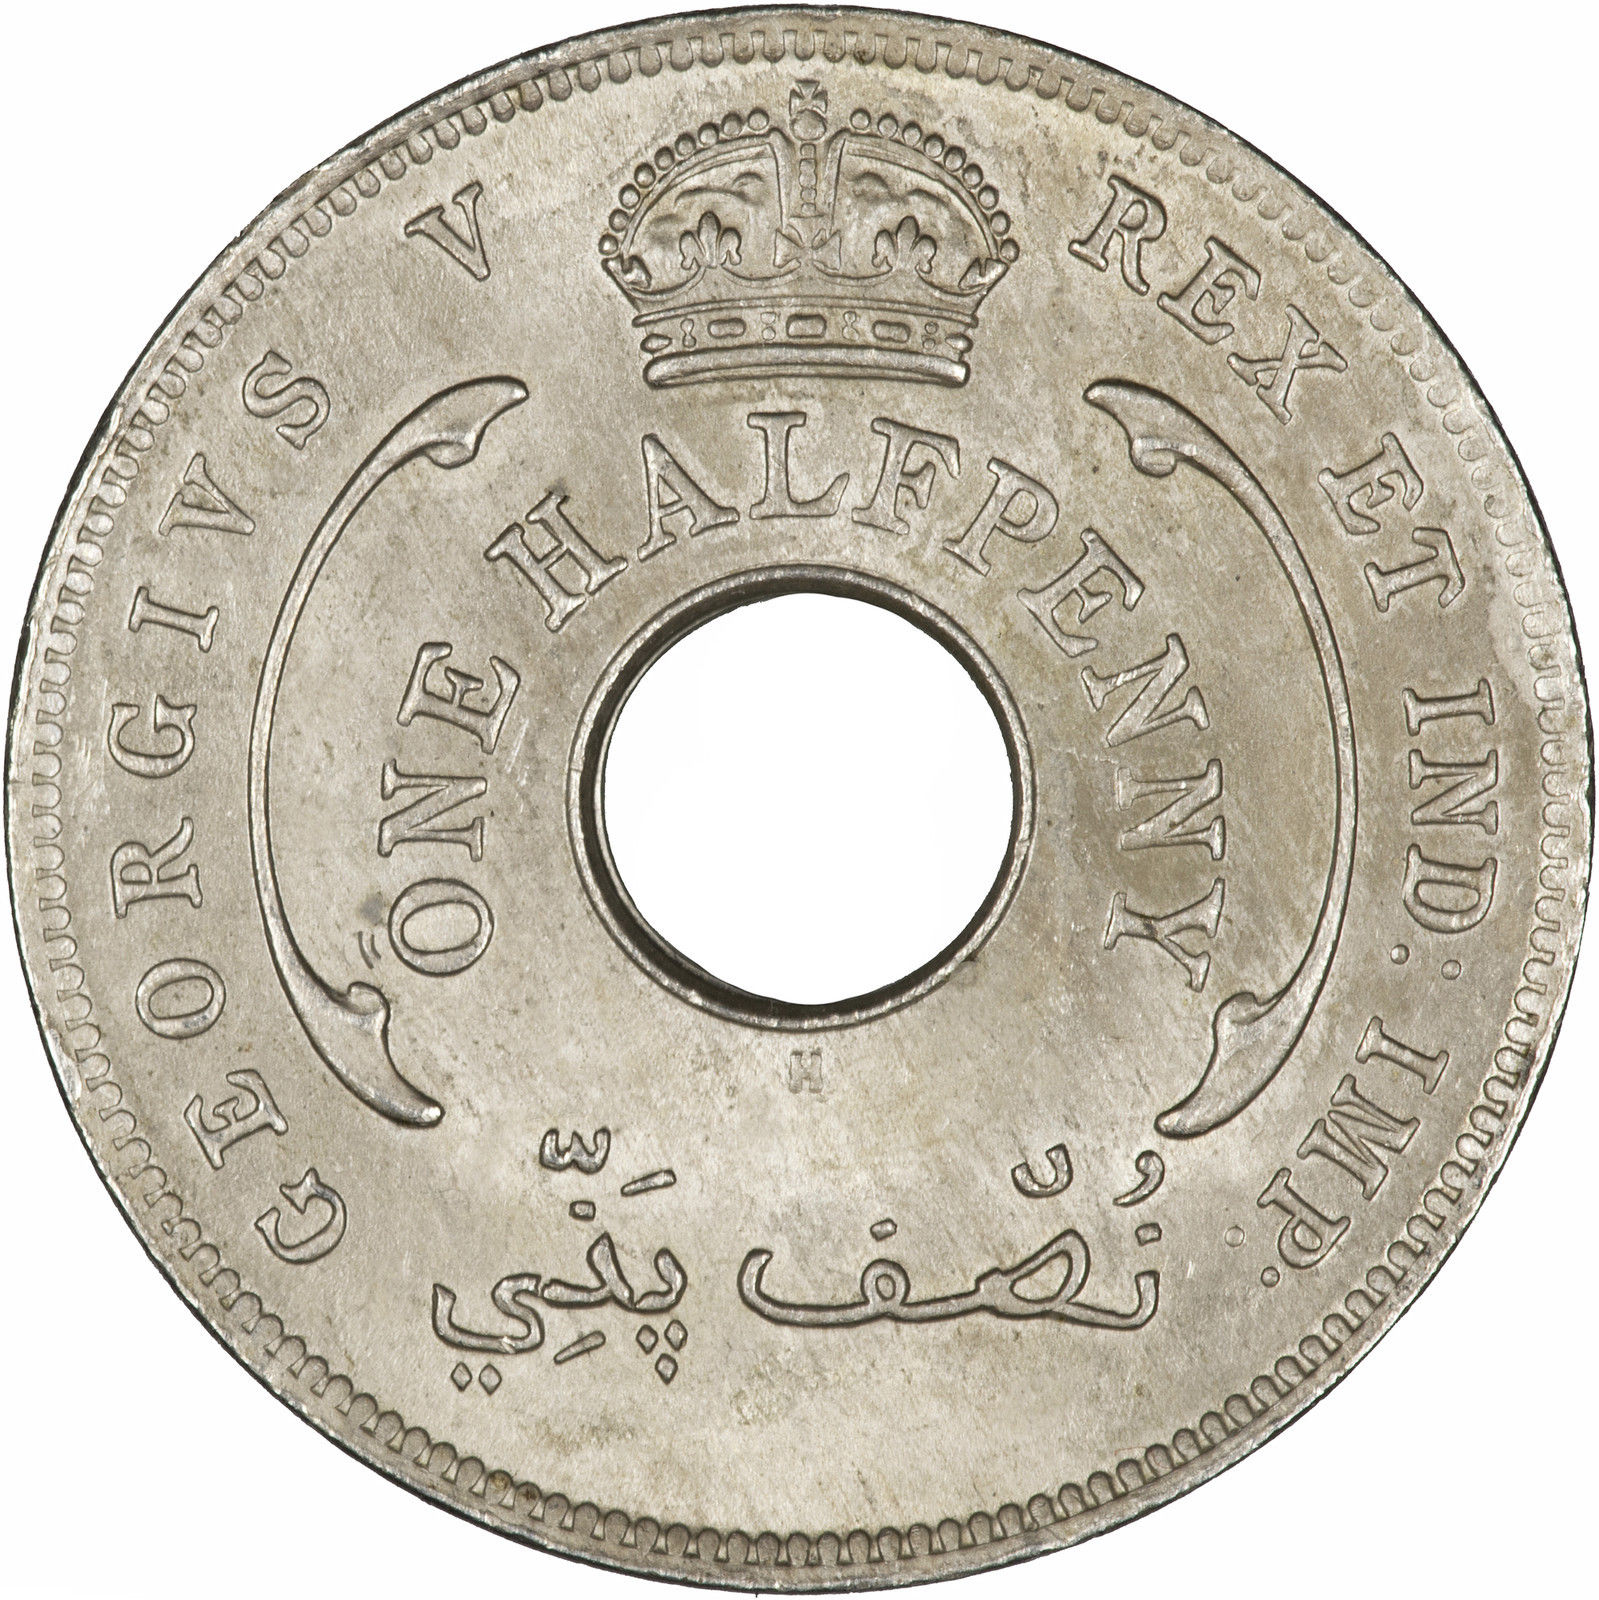 Halfpenny 1912: Photo British West Africa 1912 1/2 Penny